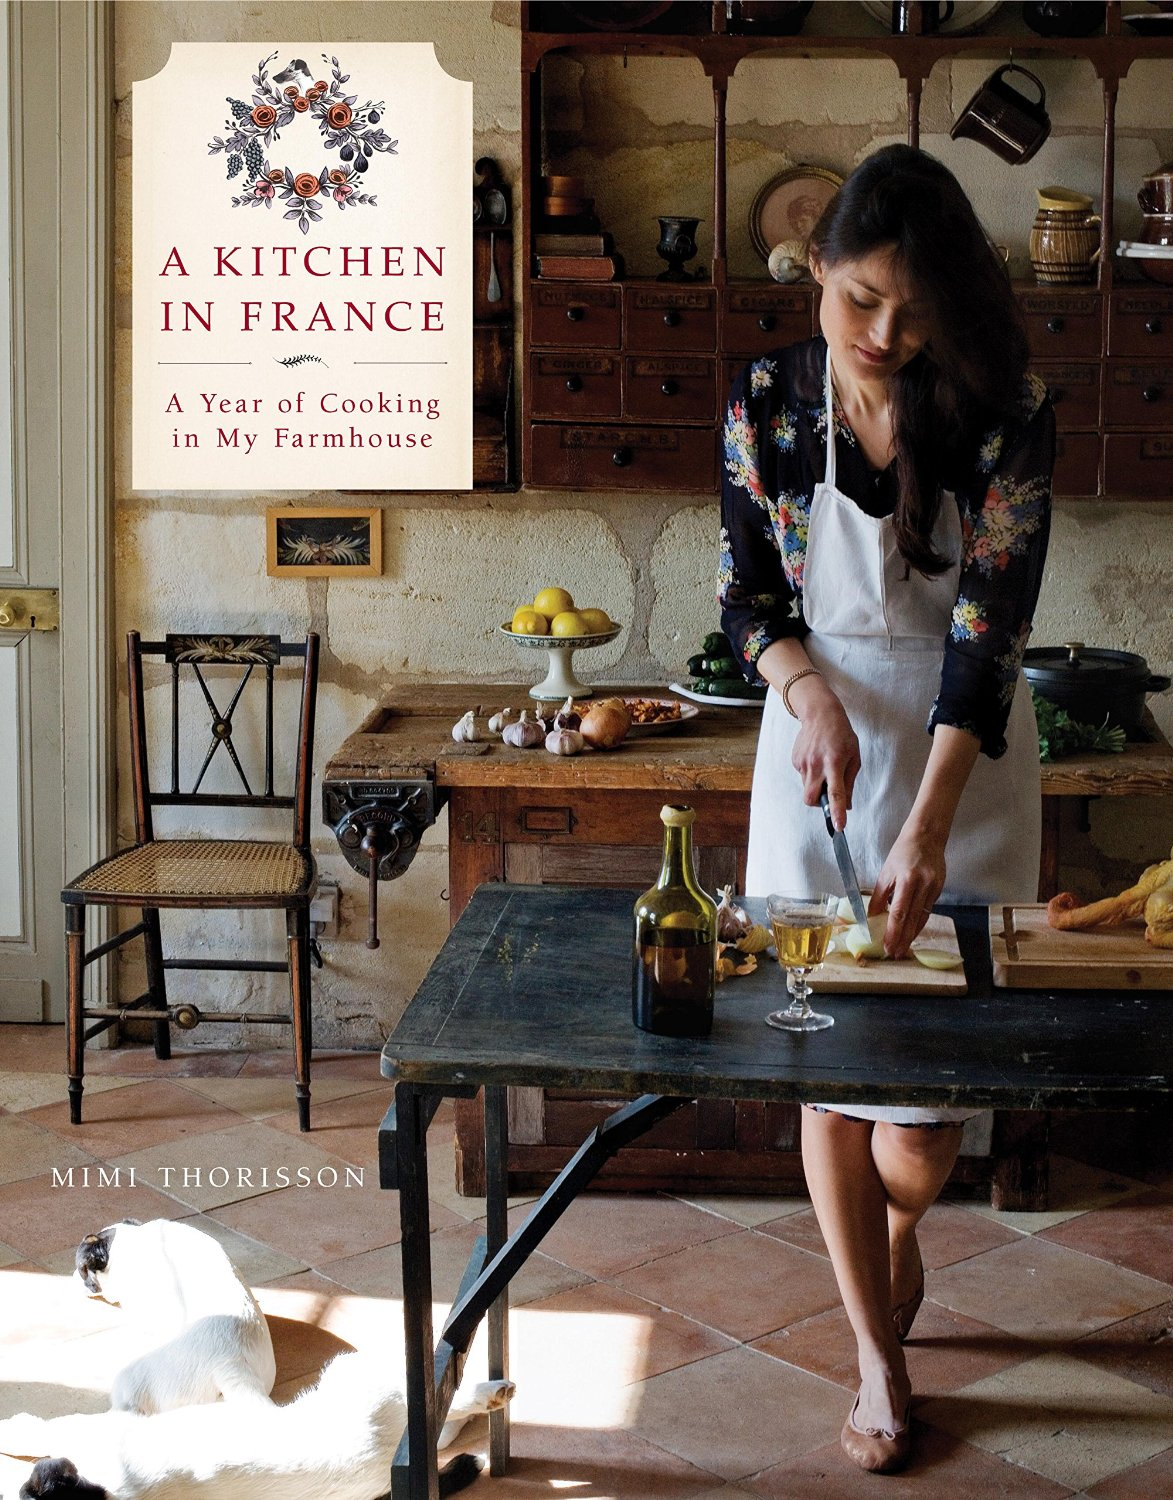 A Year of Cooking in My Farmhouse - Mimi Thorissen